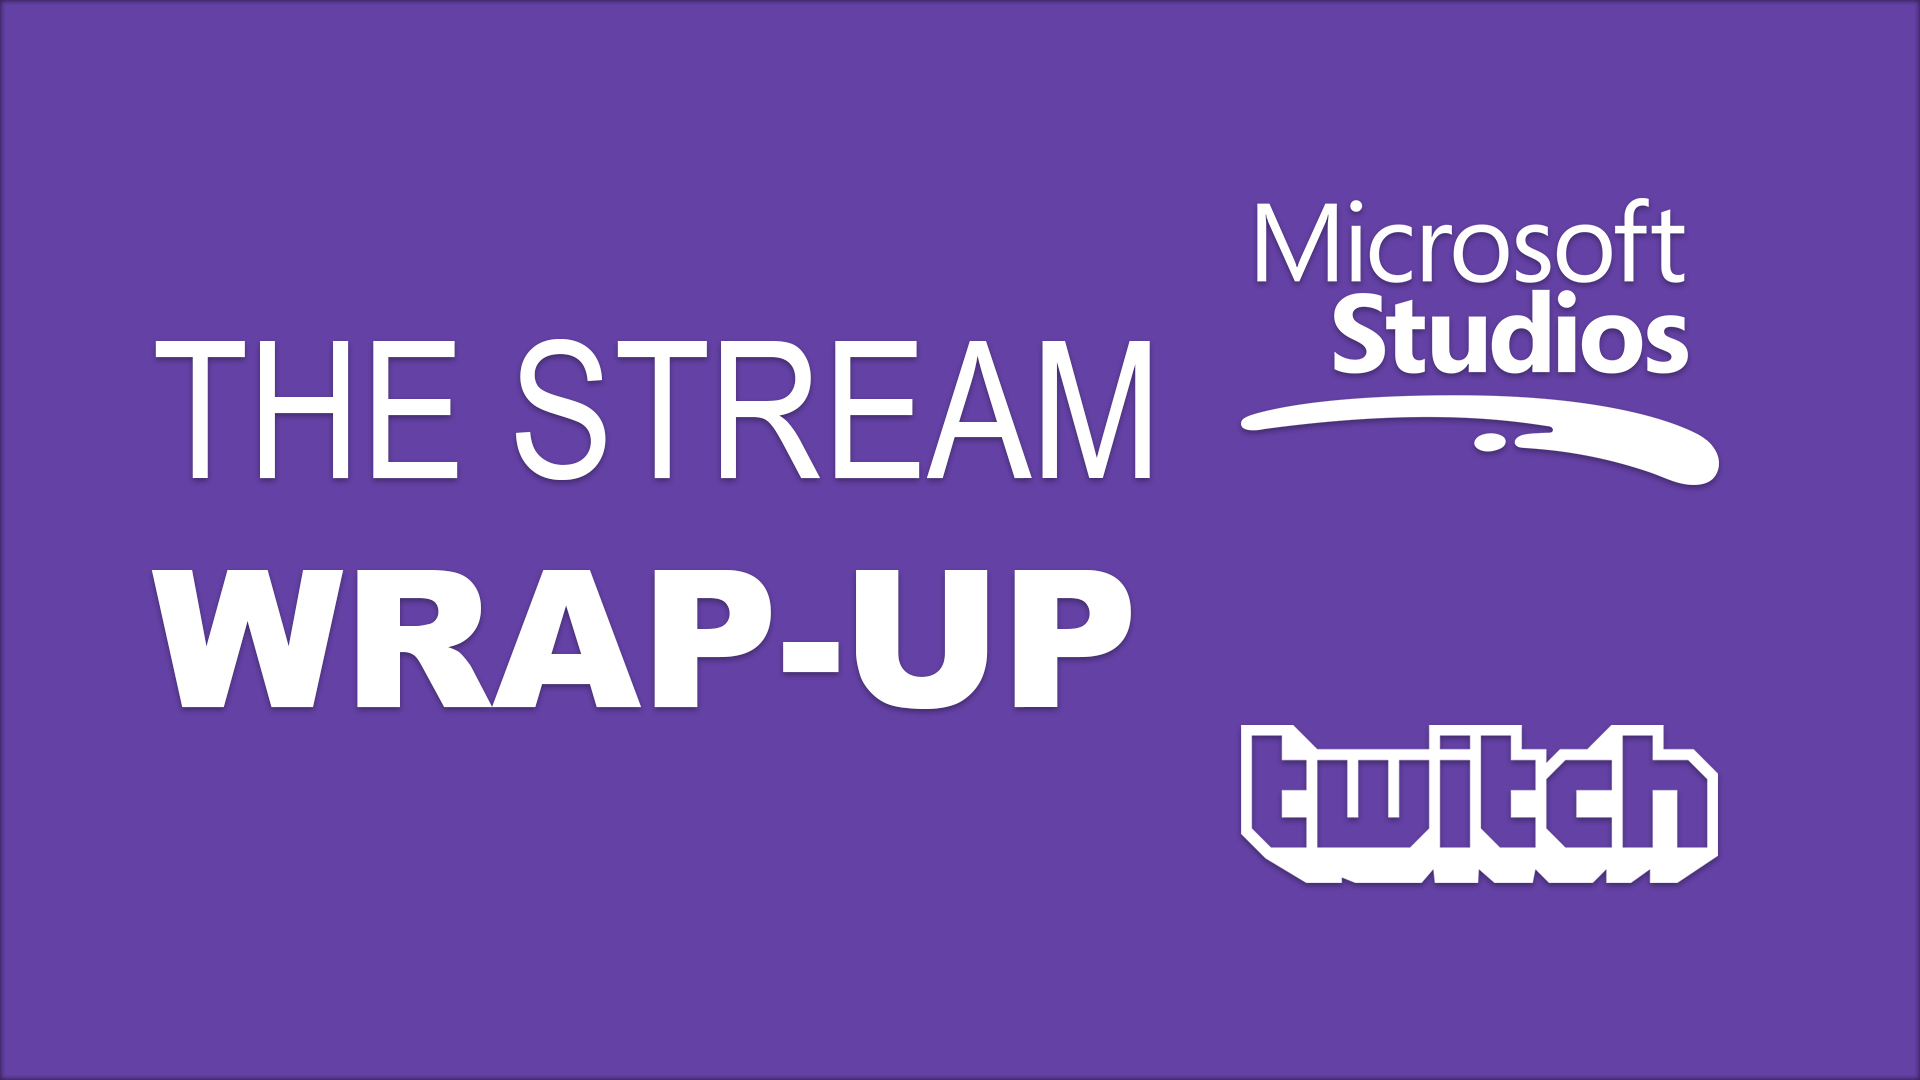 stream wrap-up featured image